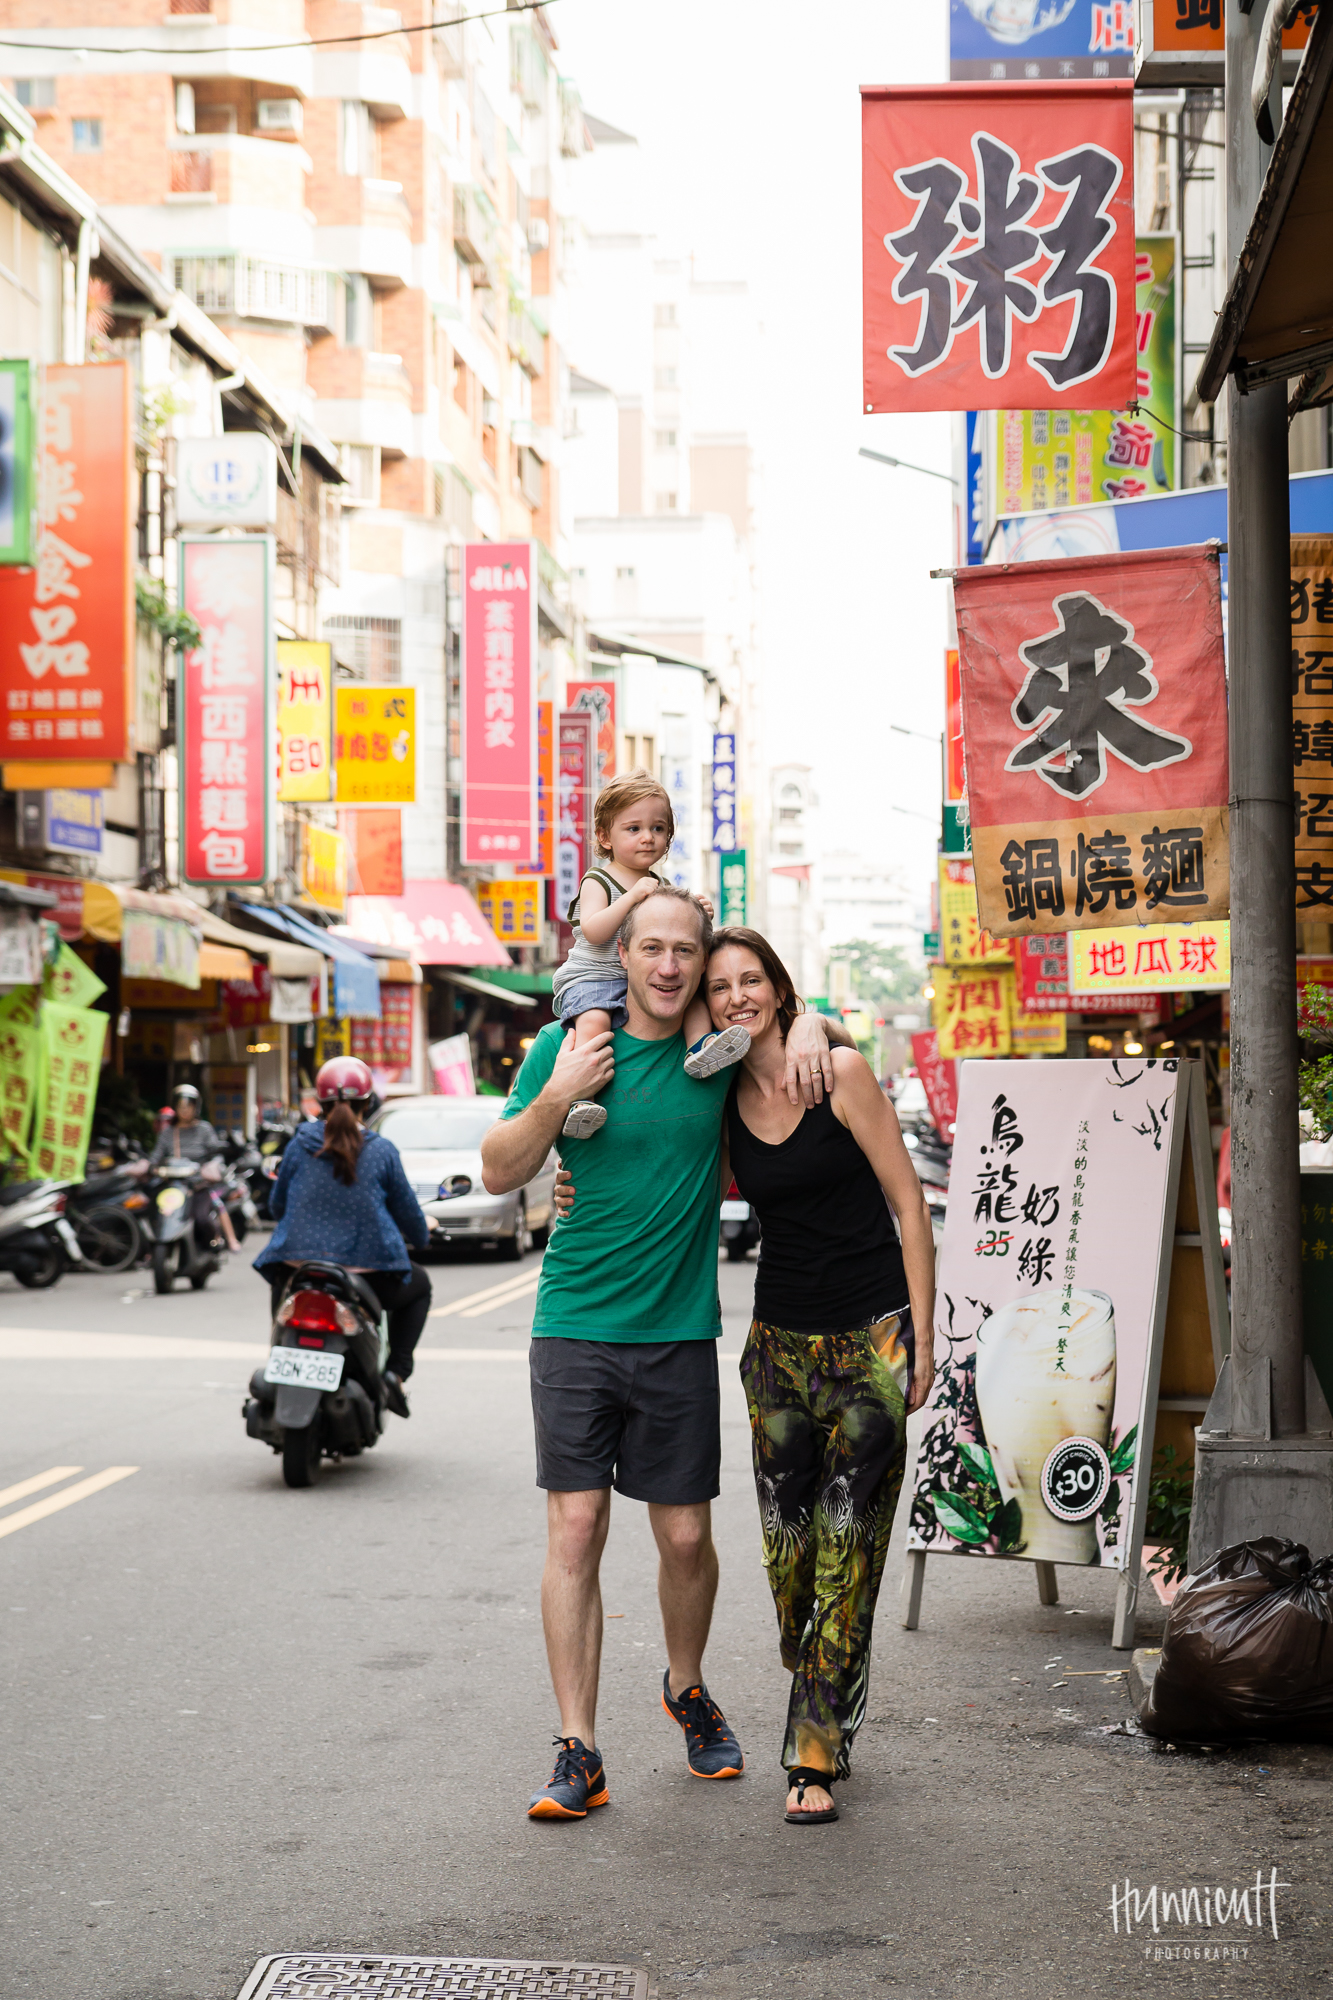 Hunnicutt_Photography_Taichung_Urban_Lifestyle_Family_Photography-13